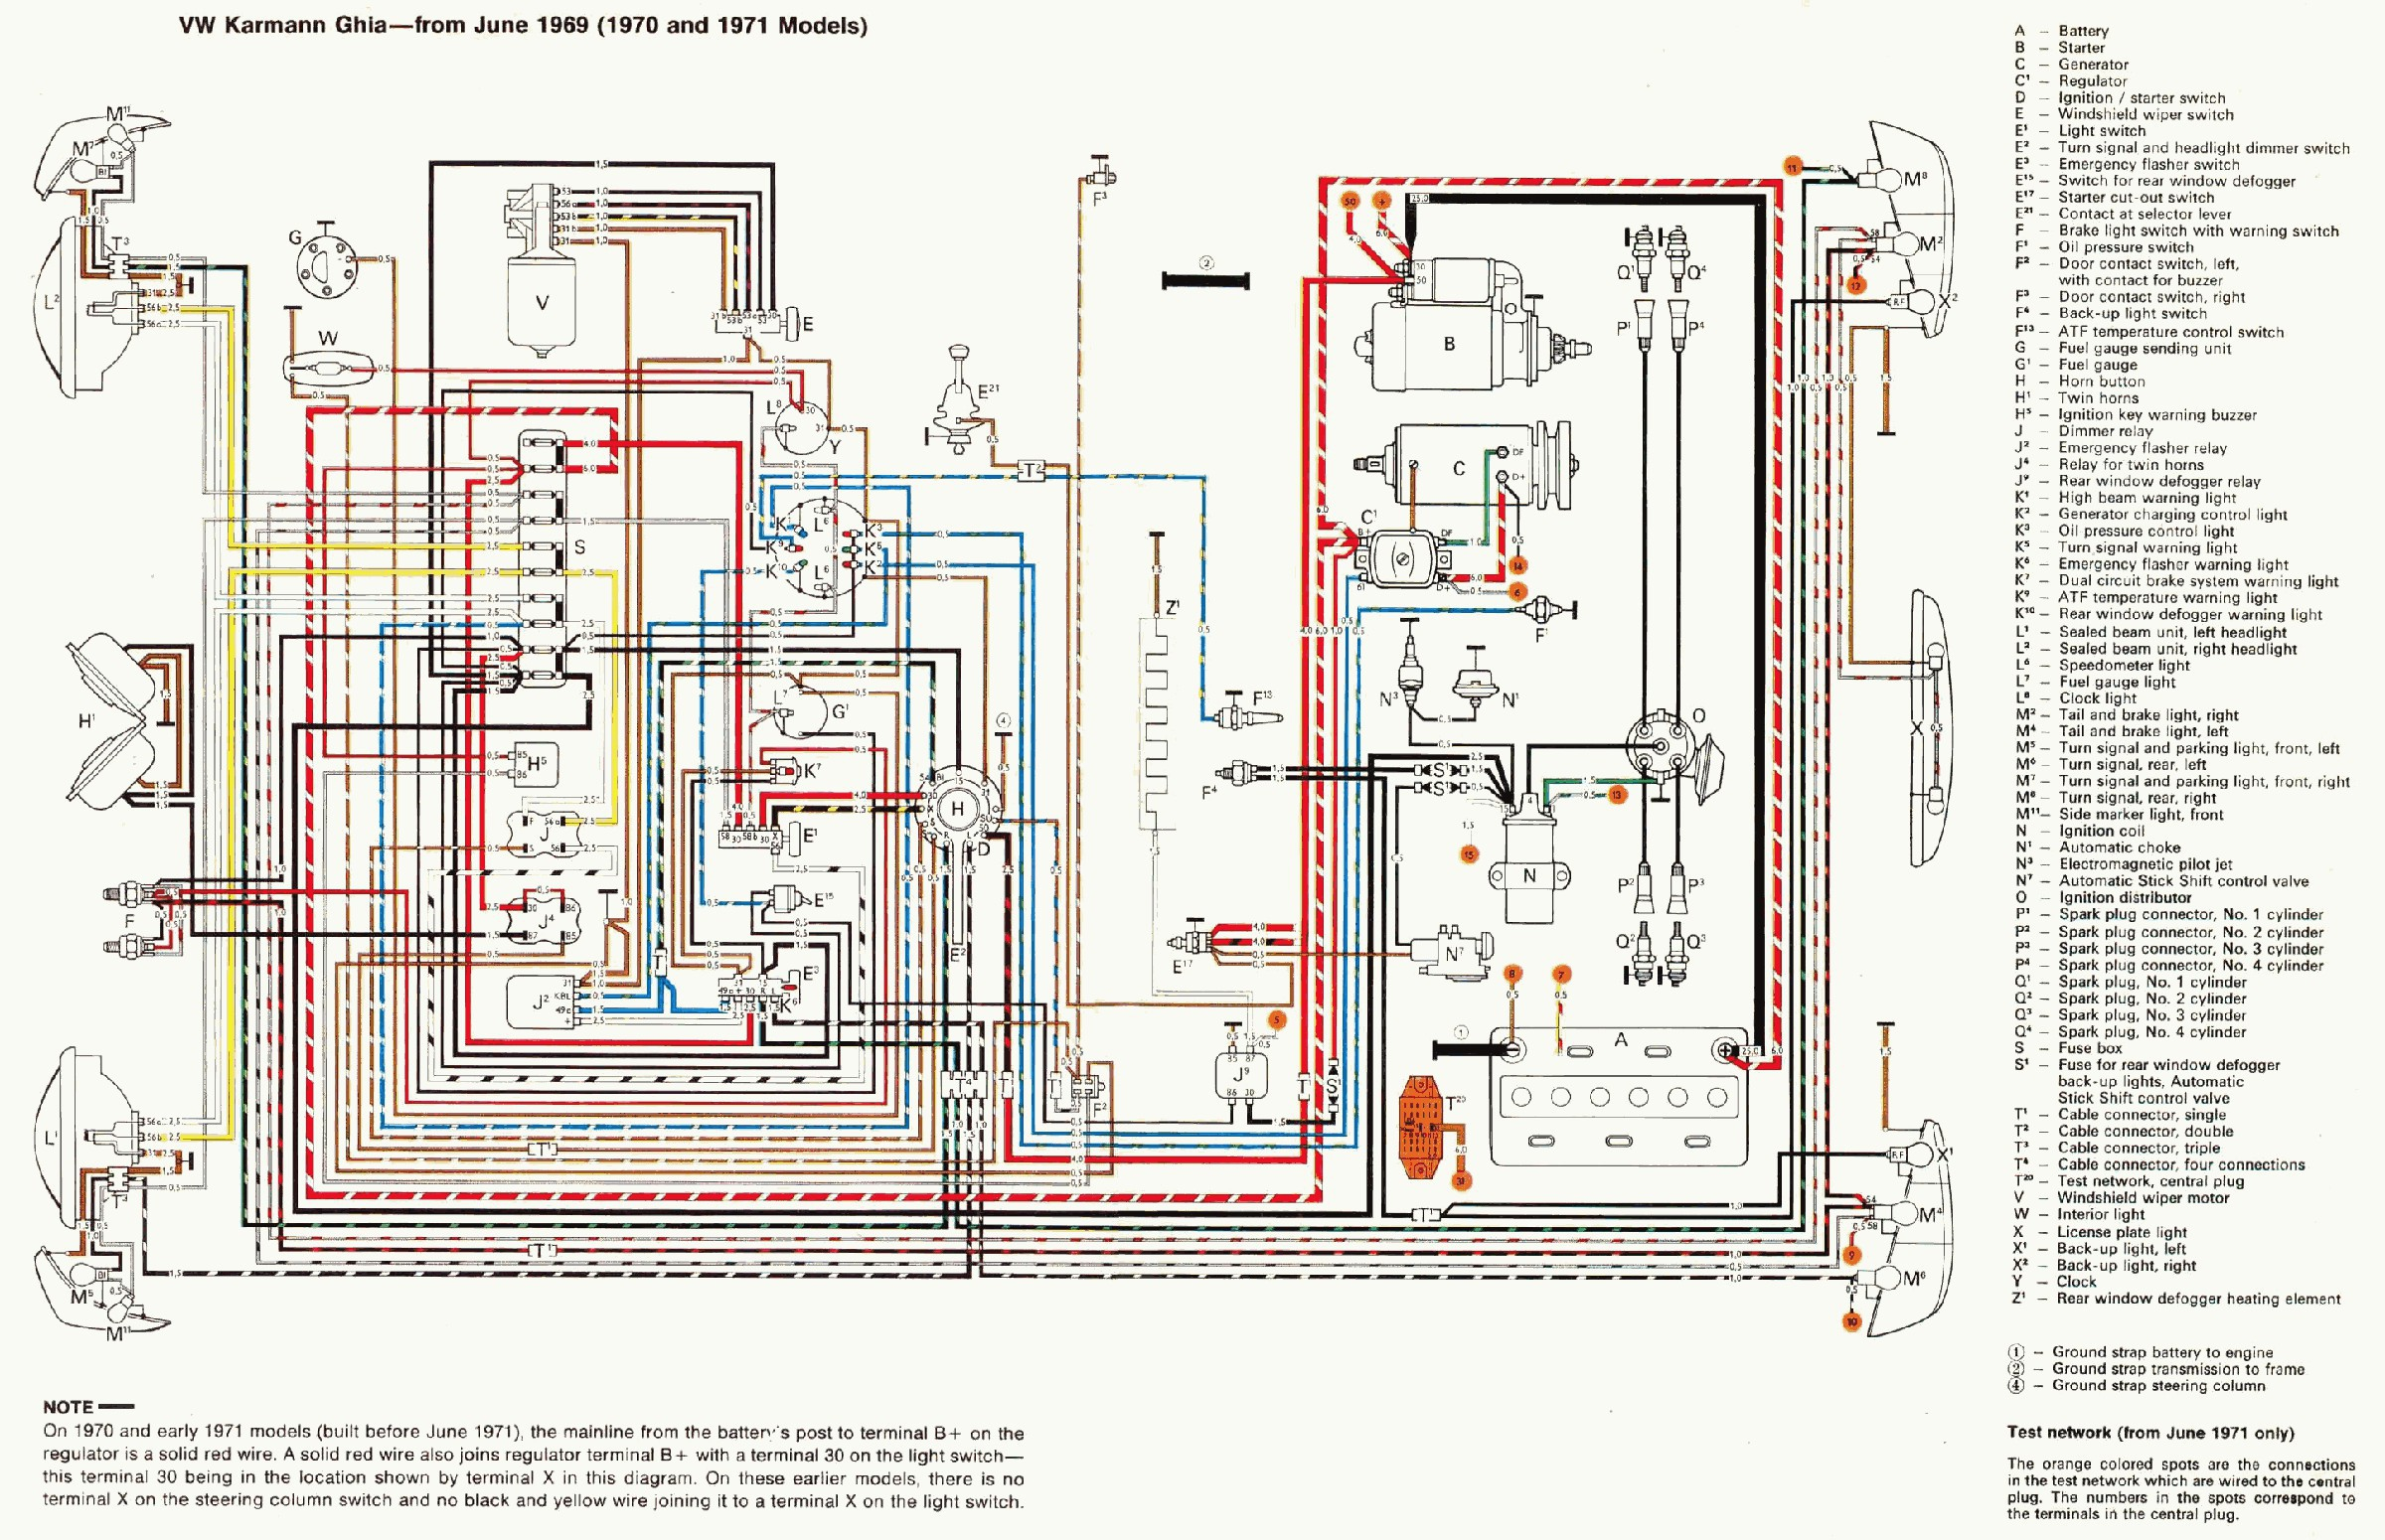 bluebird bus wiring diagram Collection-Exelent Bluebird Bus Wiring Diagram Motif Simple Wiring Diagram 11